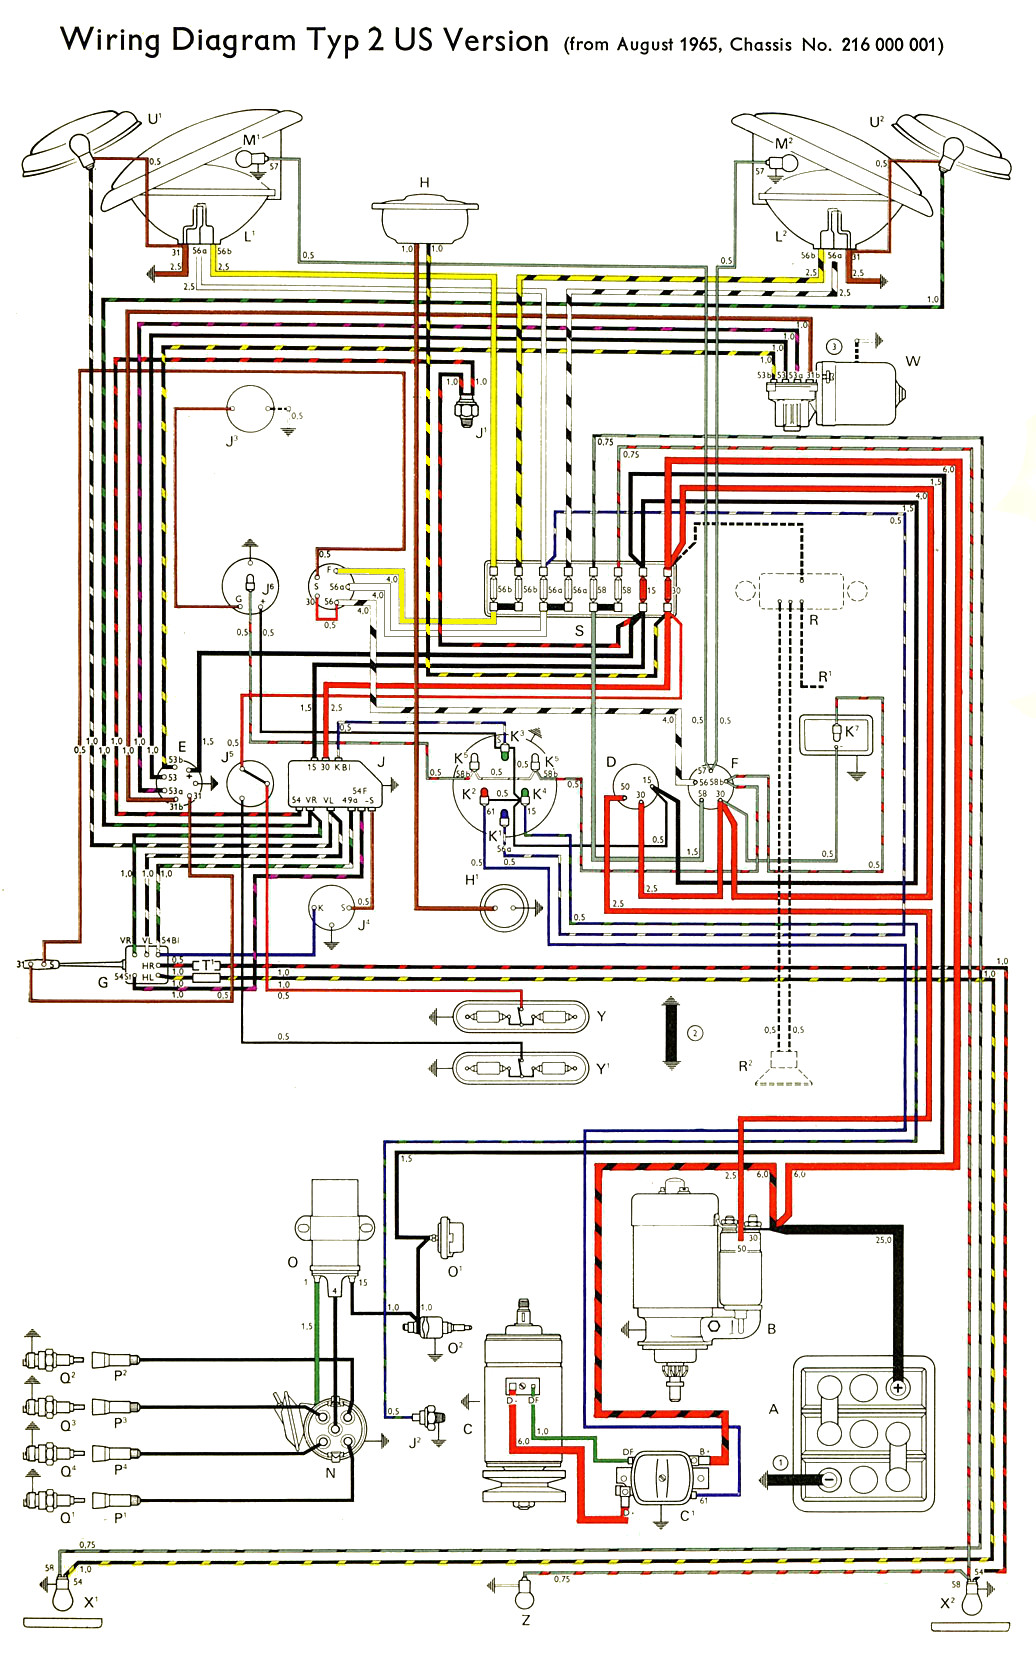 bus_66_USA thesamba com type 2 wiring diagrams vw phaeton fuse box diagram at nearapp.co